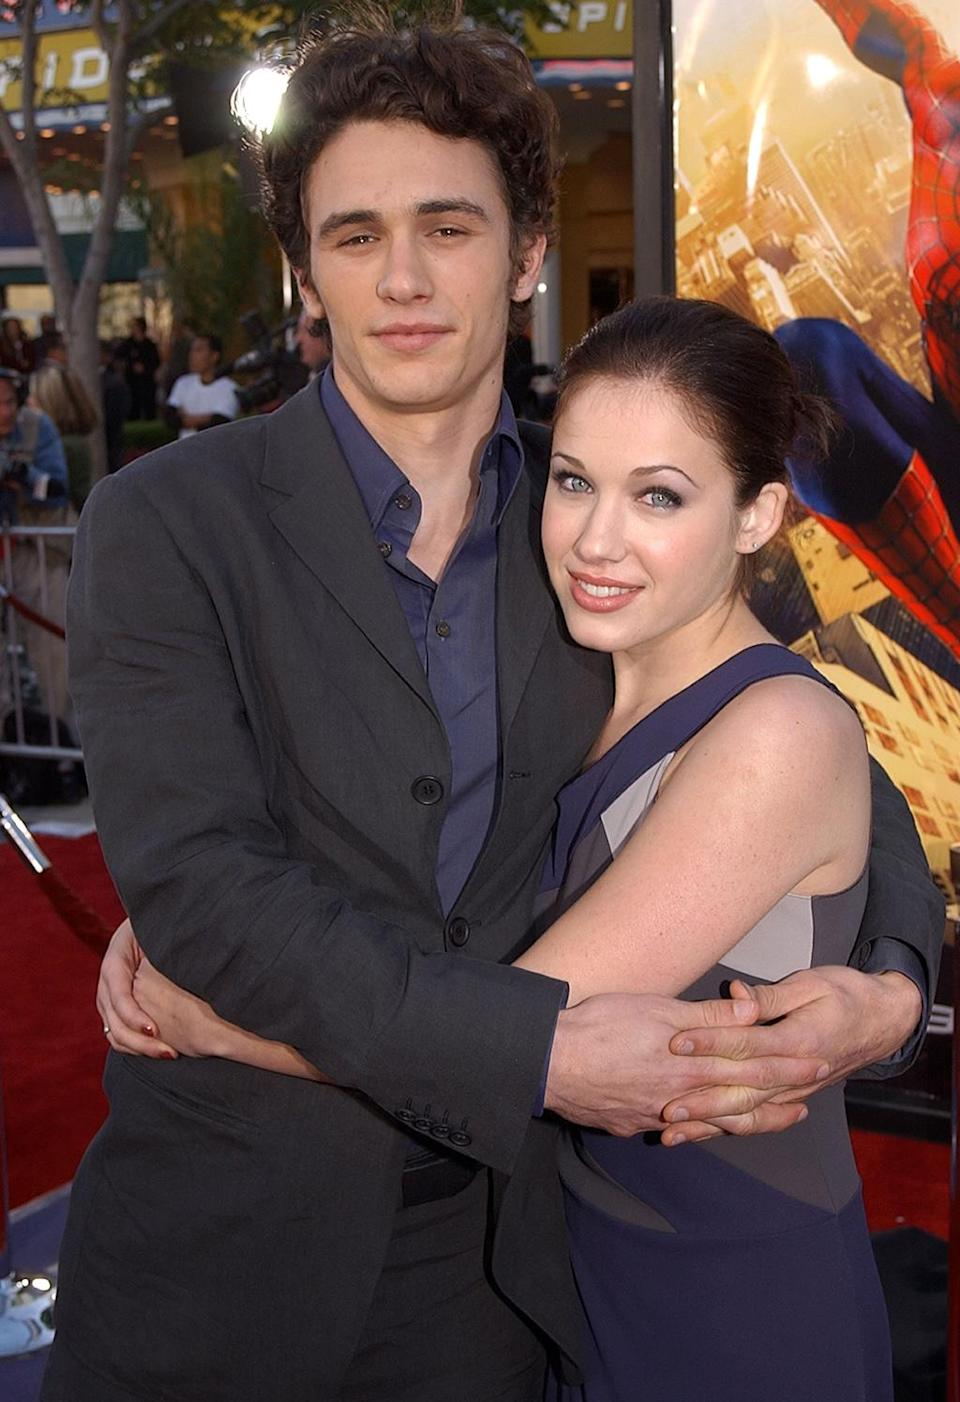 <p>Franco, who played Harry Osborn (son of Norman/Green Goblin and best friend to Peter Parker), brought then-girlfriend Sokoloff to the L.A. premiere. The <em>Whatever It Takes</em> co-stars dated for five years. (Photo: Robert Mora/Getty Images) </p>